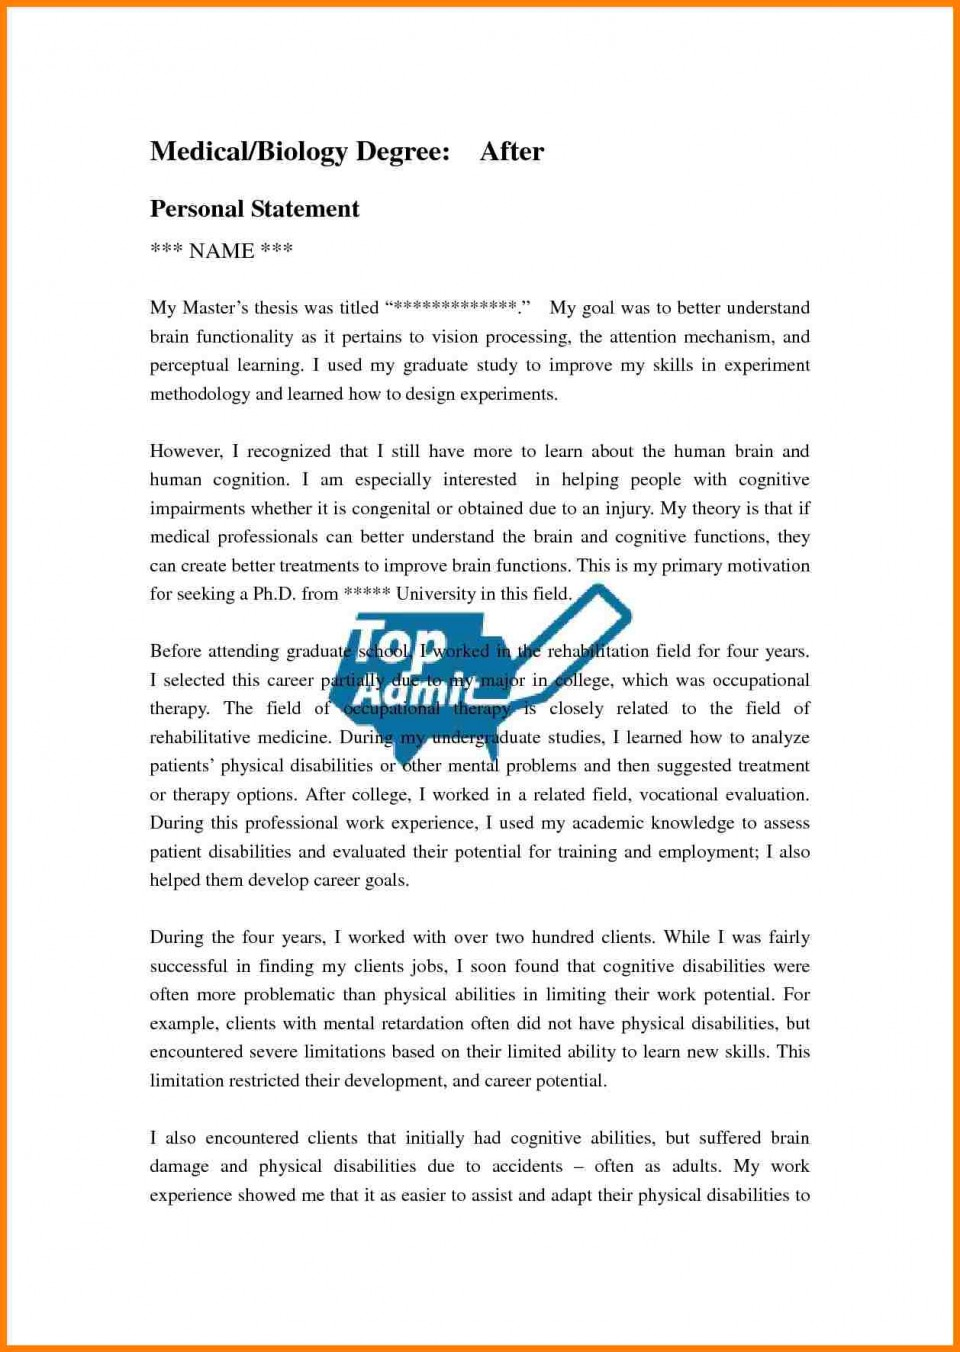 011 Essay Example Teen Essays On Football Basketball Baseball Track And Personal Goals For Graduate School L Exceptional My Favorite Game In Marathi Related Discursive Topics Hindi Wikipedia 960